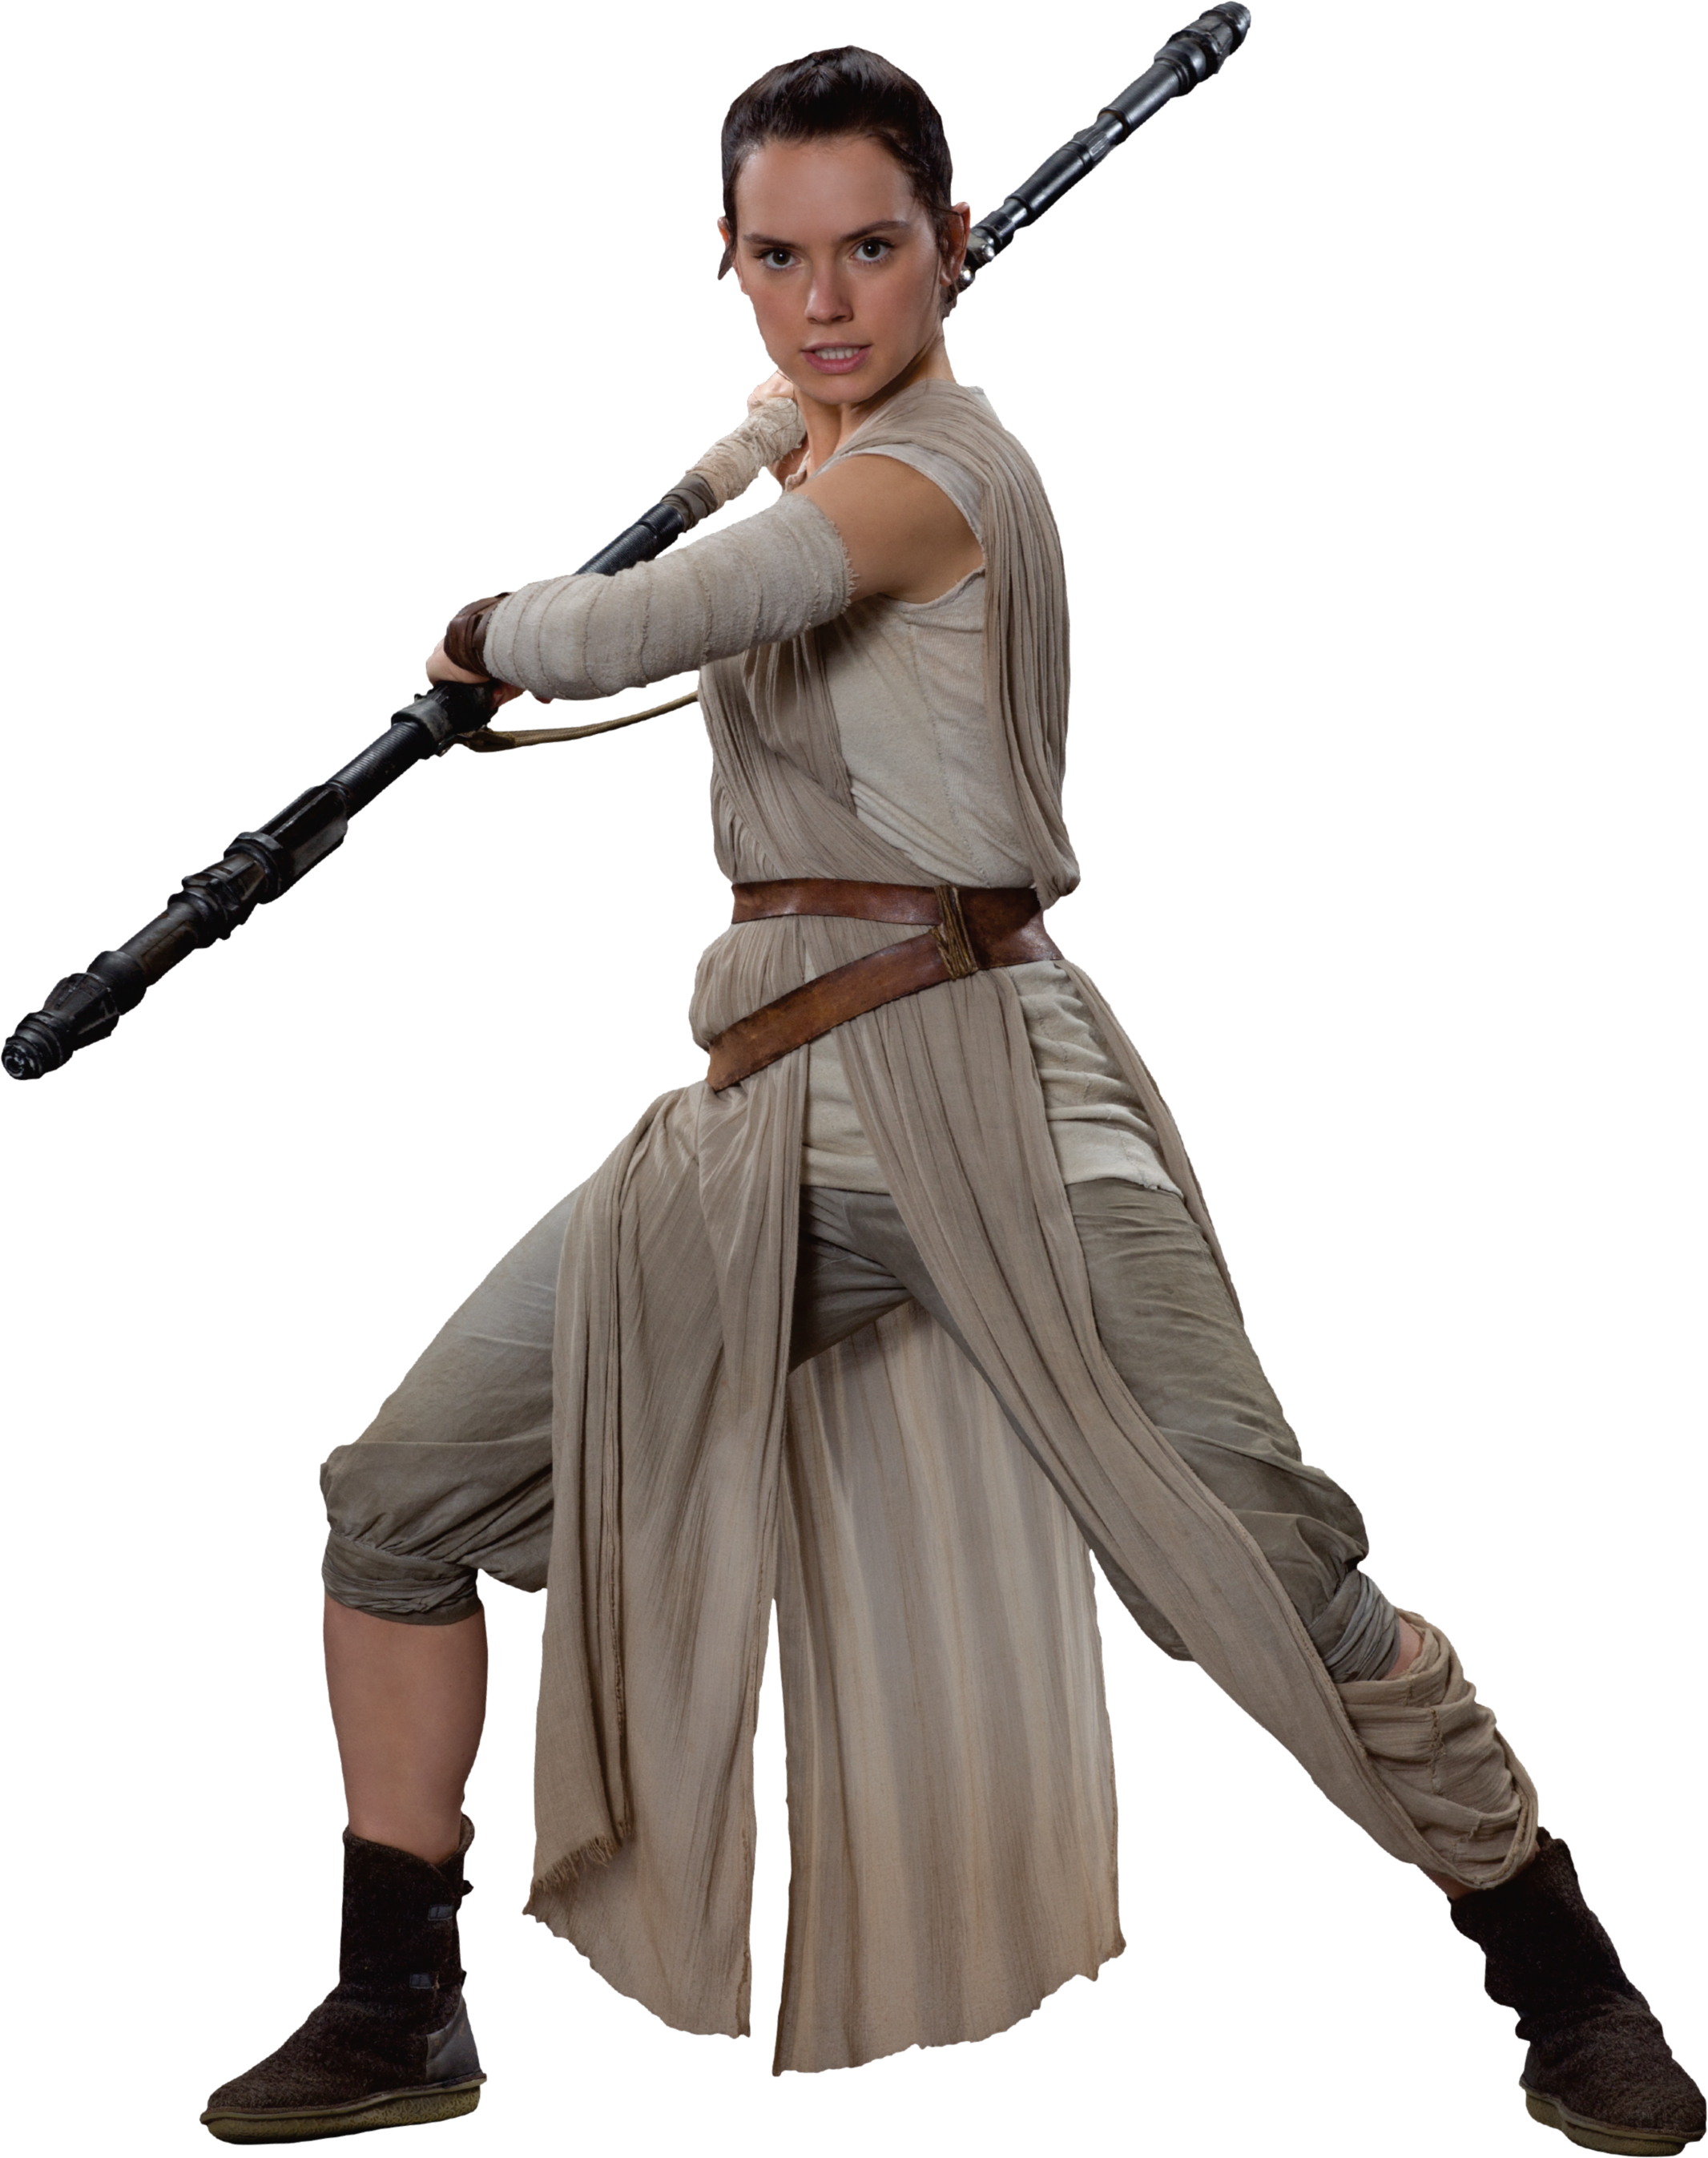 characters of TheForceAwakens in HQ Star Wars The Force Awakens 2132x2693